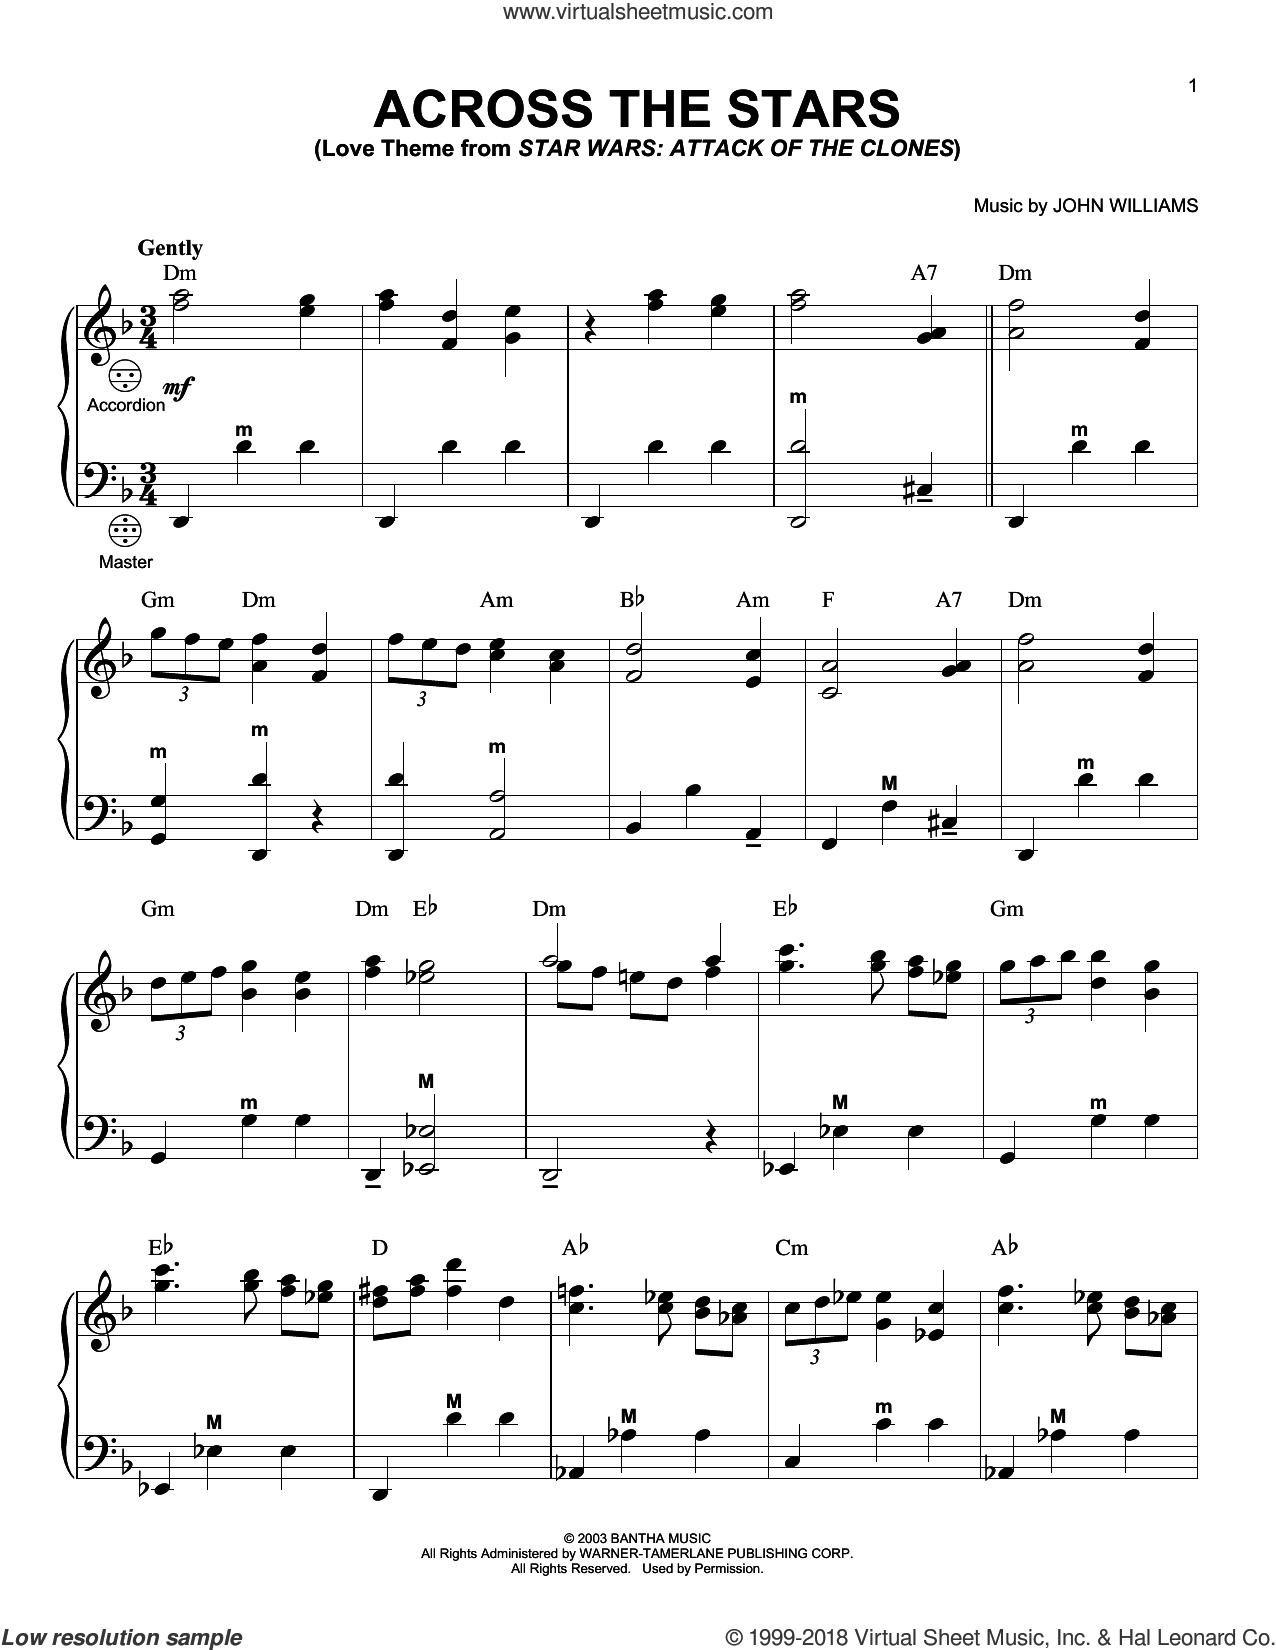 Across The Stars sheet music for accordion by John Williams, intermediate skill level